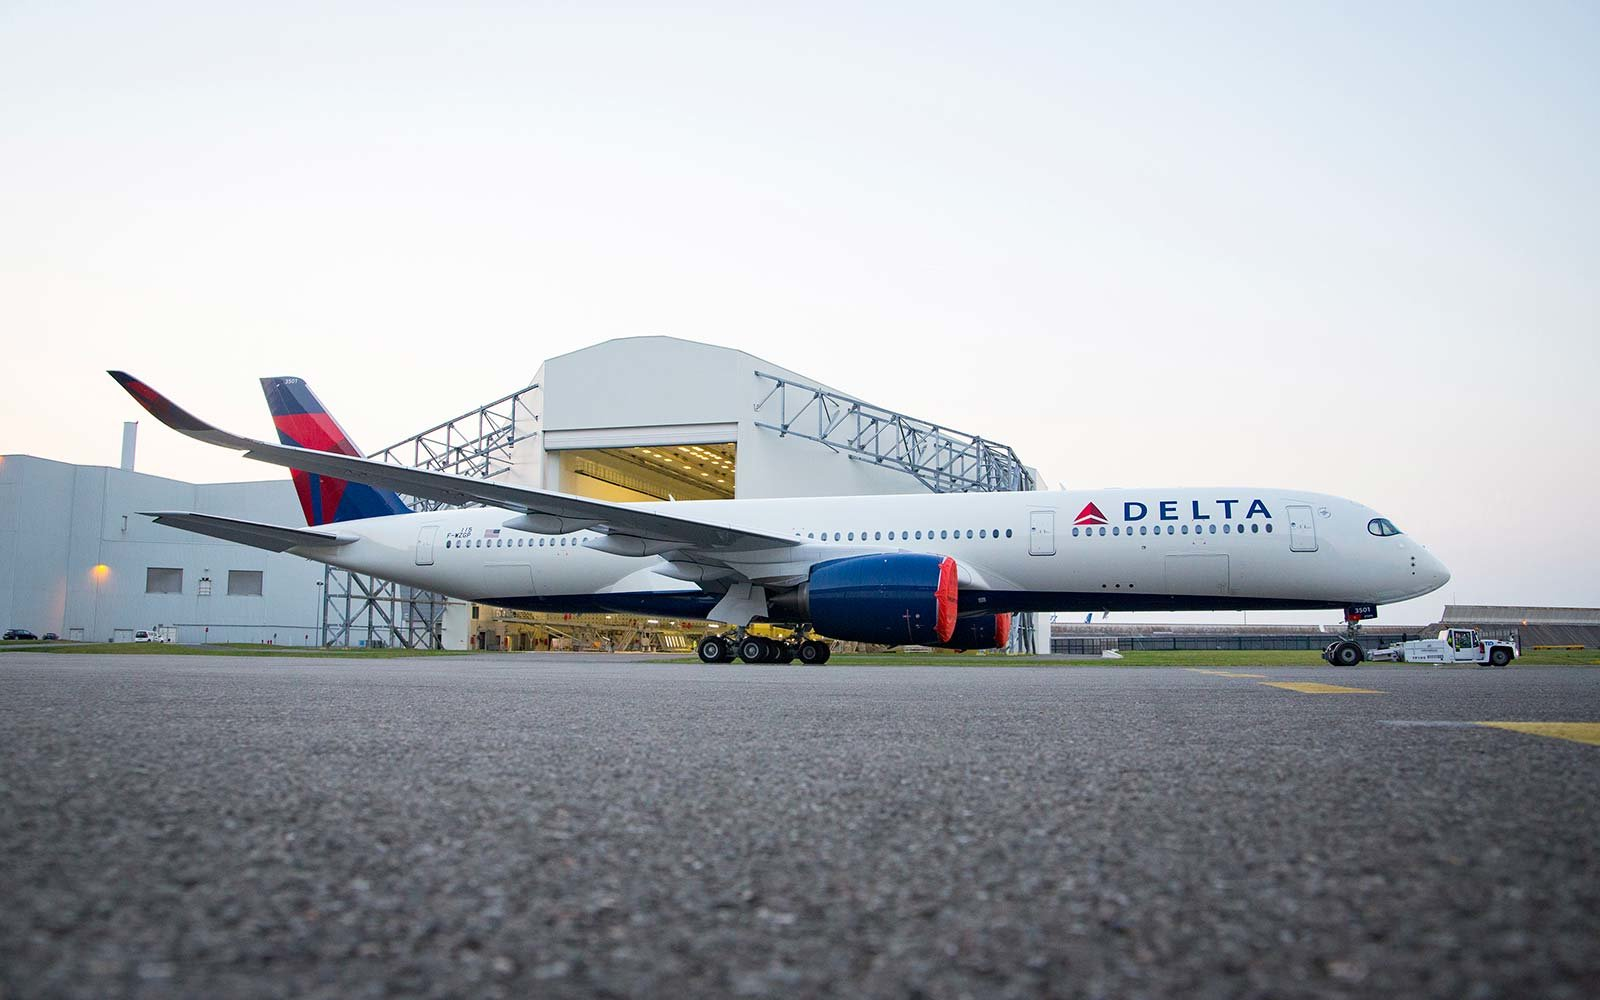 Delta S Brand New Plane Is The First To Feature The